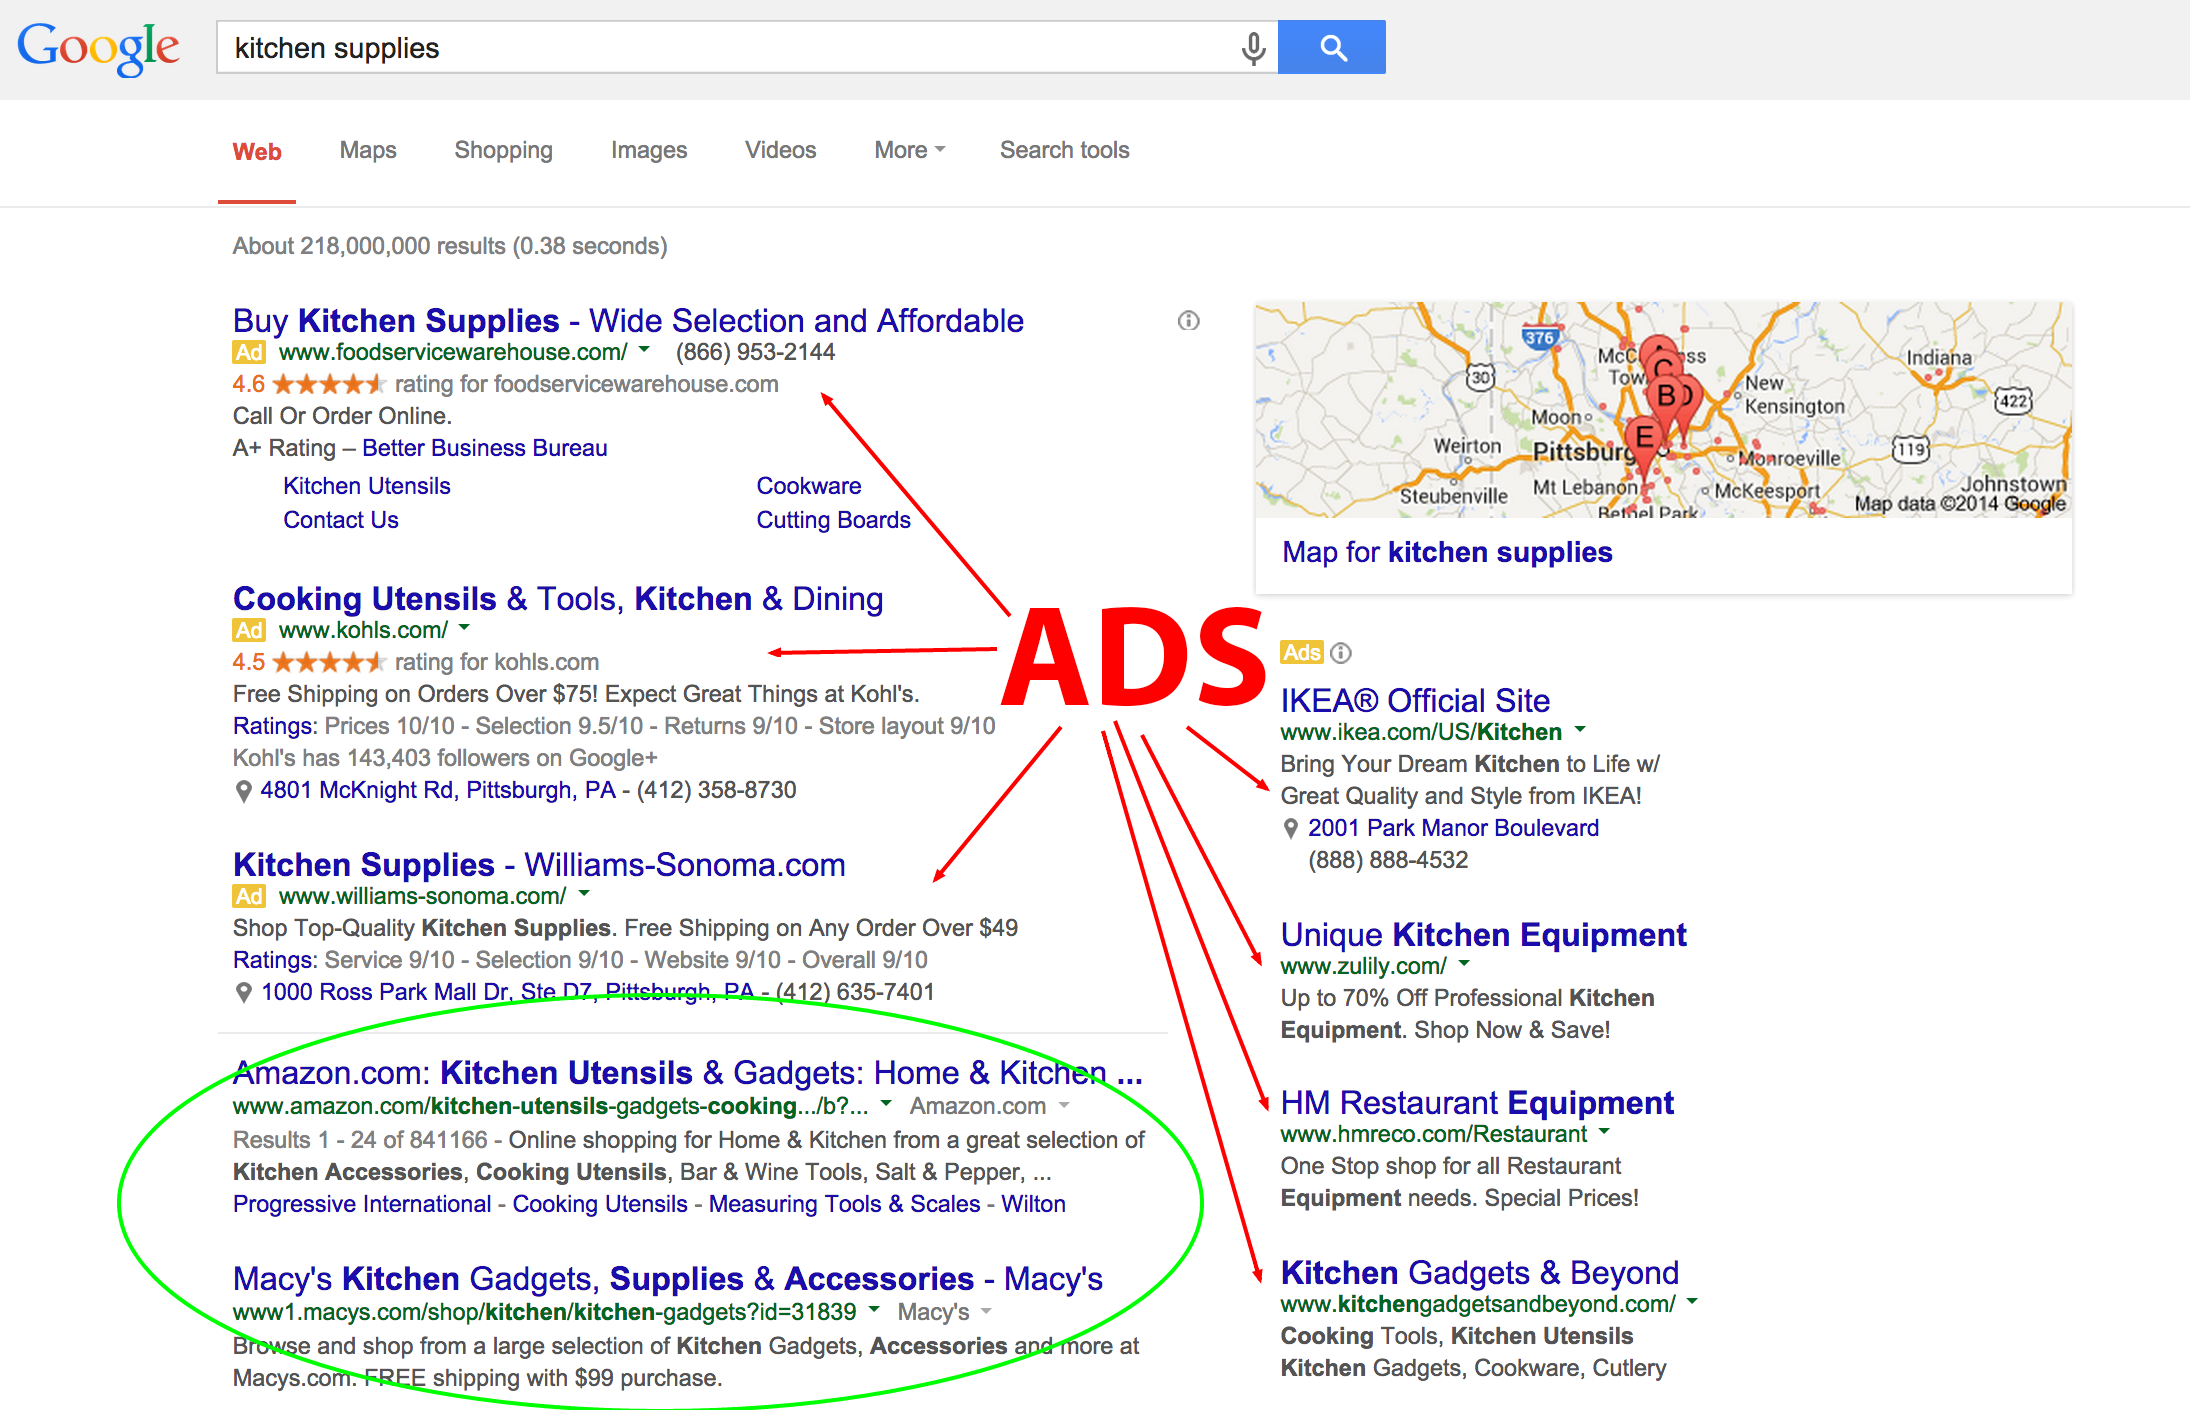 Showing how non-social searches pull up a great deal of ads